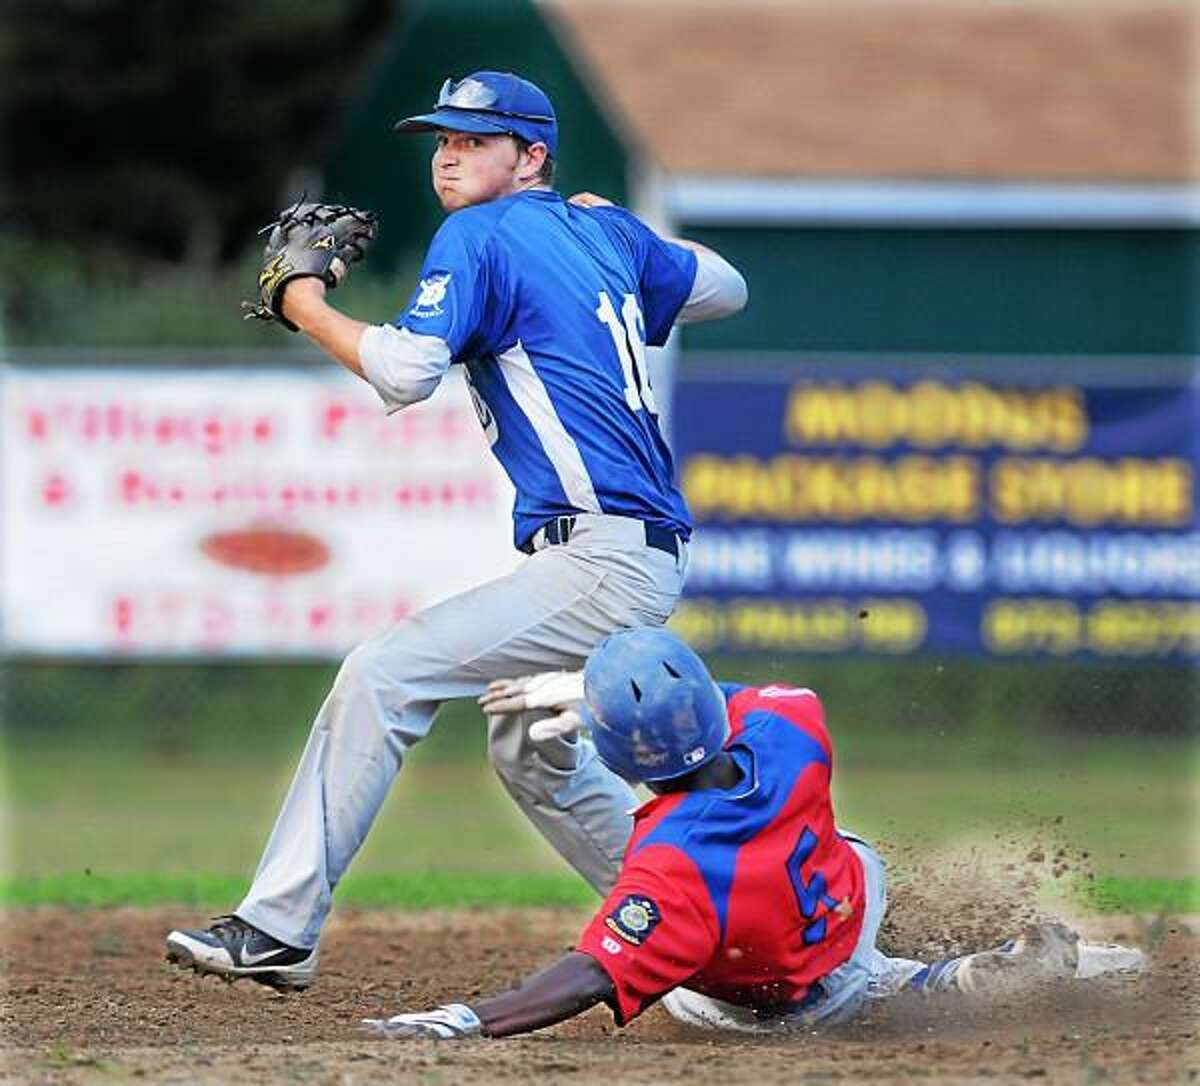 Middletown's Malcolm Allyene is forced out at second by East Haddam 's Troy DeLeone Tuesday evening at Memorial Field in East Haddam. Post 156 defeated Middletown 5-2. Photo by Catherine Avalone - The Middletown Press